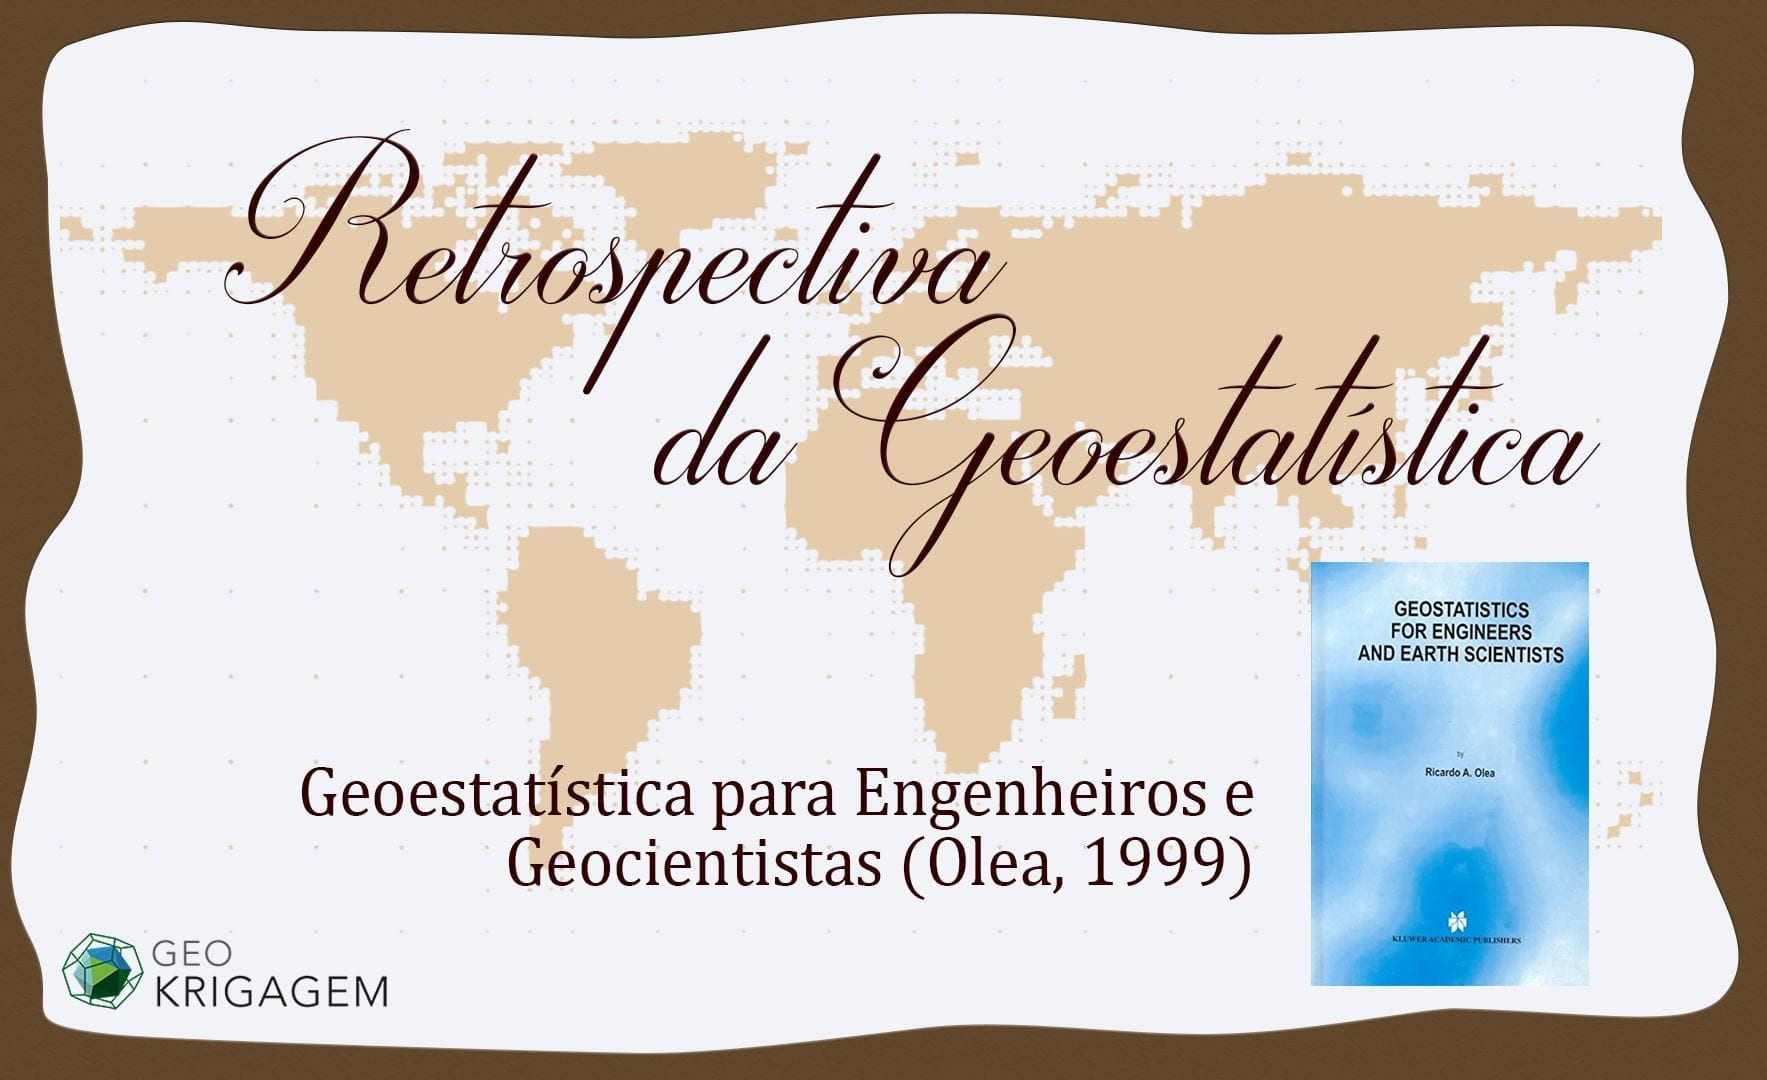 Retrospectiva da Geoestatística XVI - Olea - Geostatistics for Engineers and Earth Scientists (Geoestatística para Engenheiros e Geocientistas)